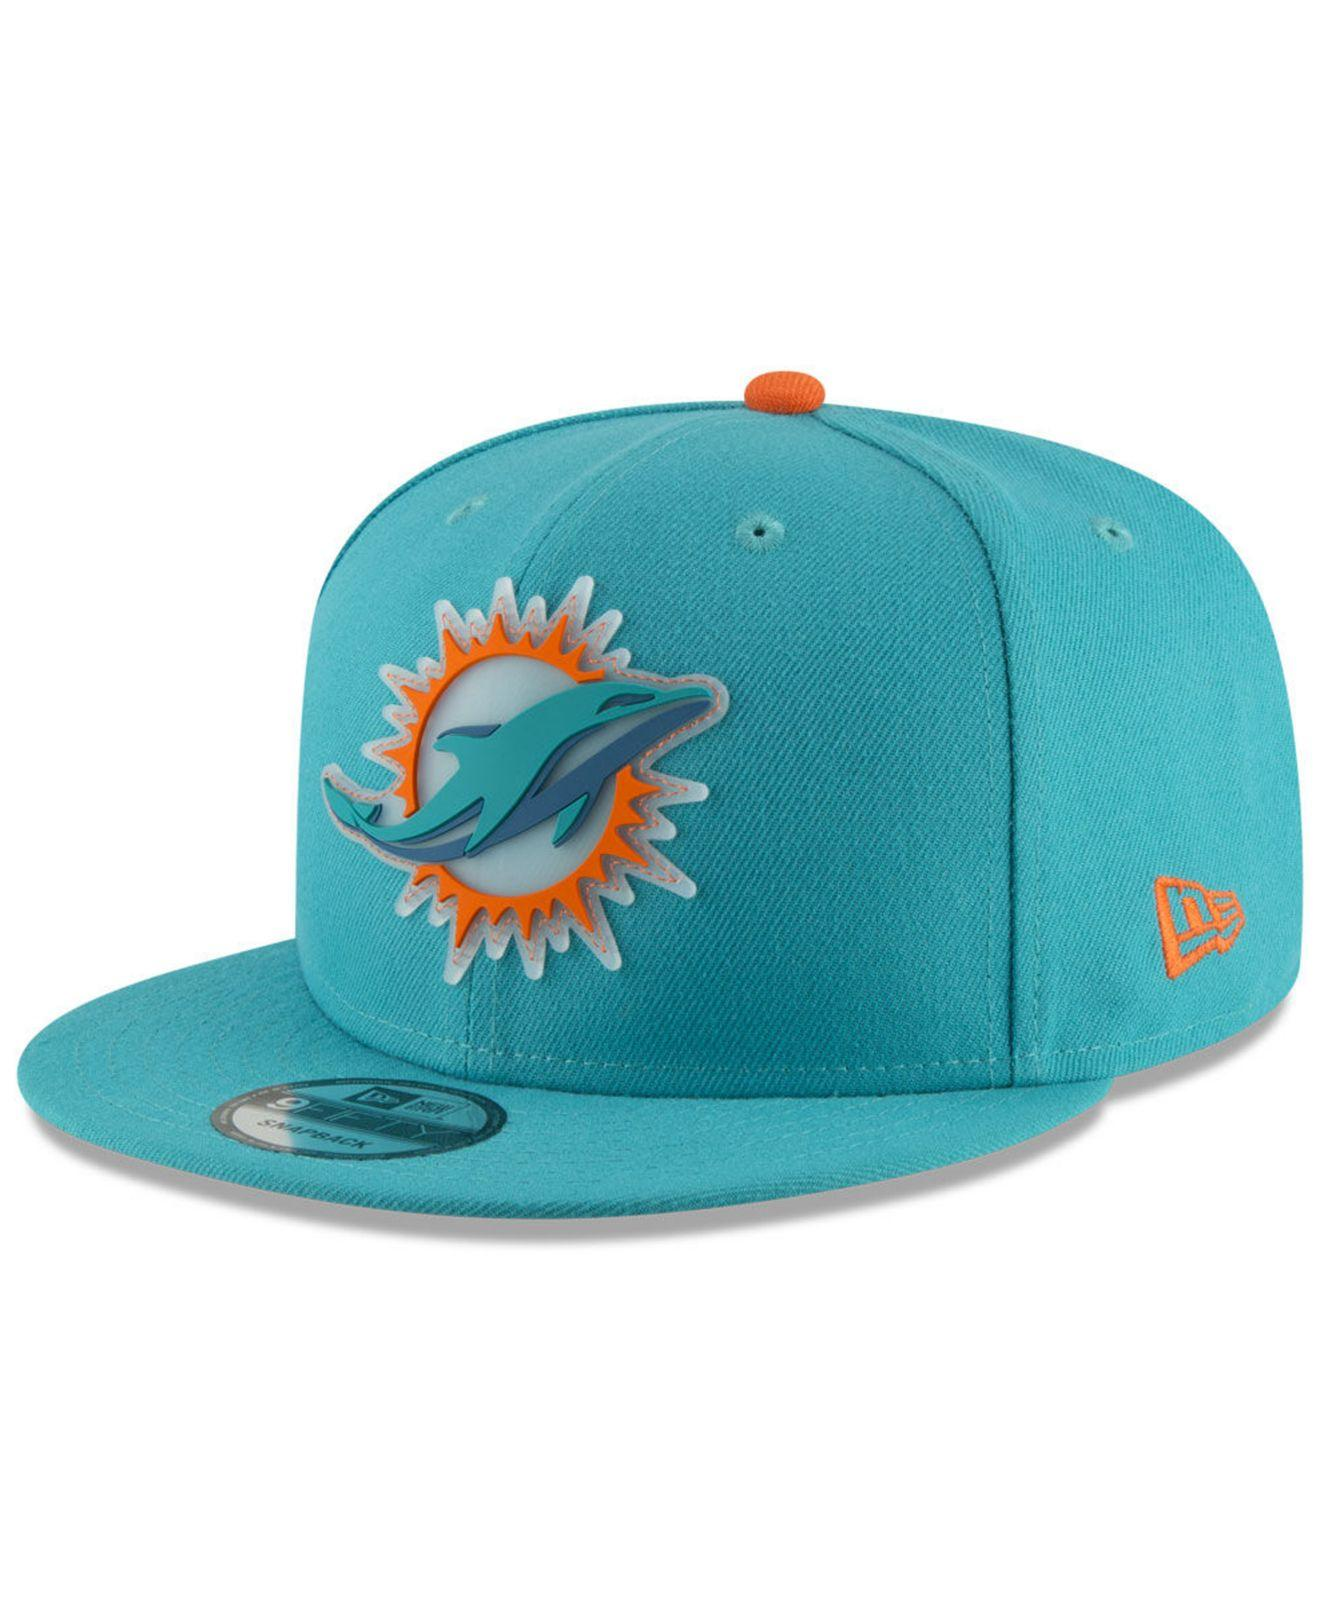 huge selection of 58f2b 1eadc KTZ - Blue Miami Dolphins Team Clear 9fifty Snapback Cap for Men - Lyst.  View fullscreen